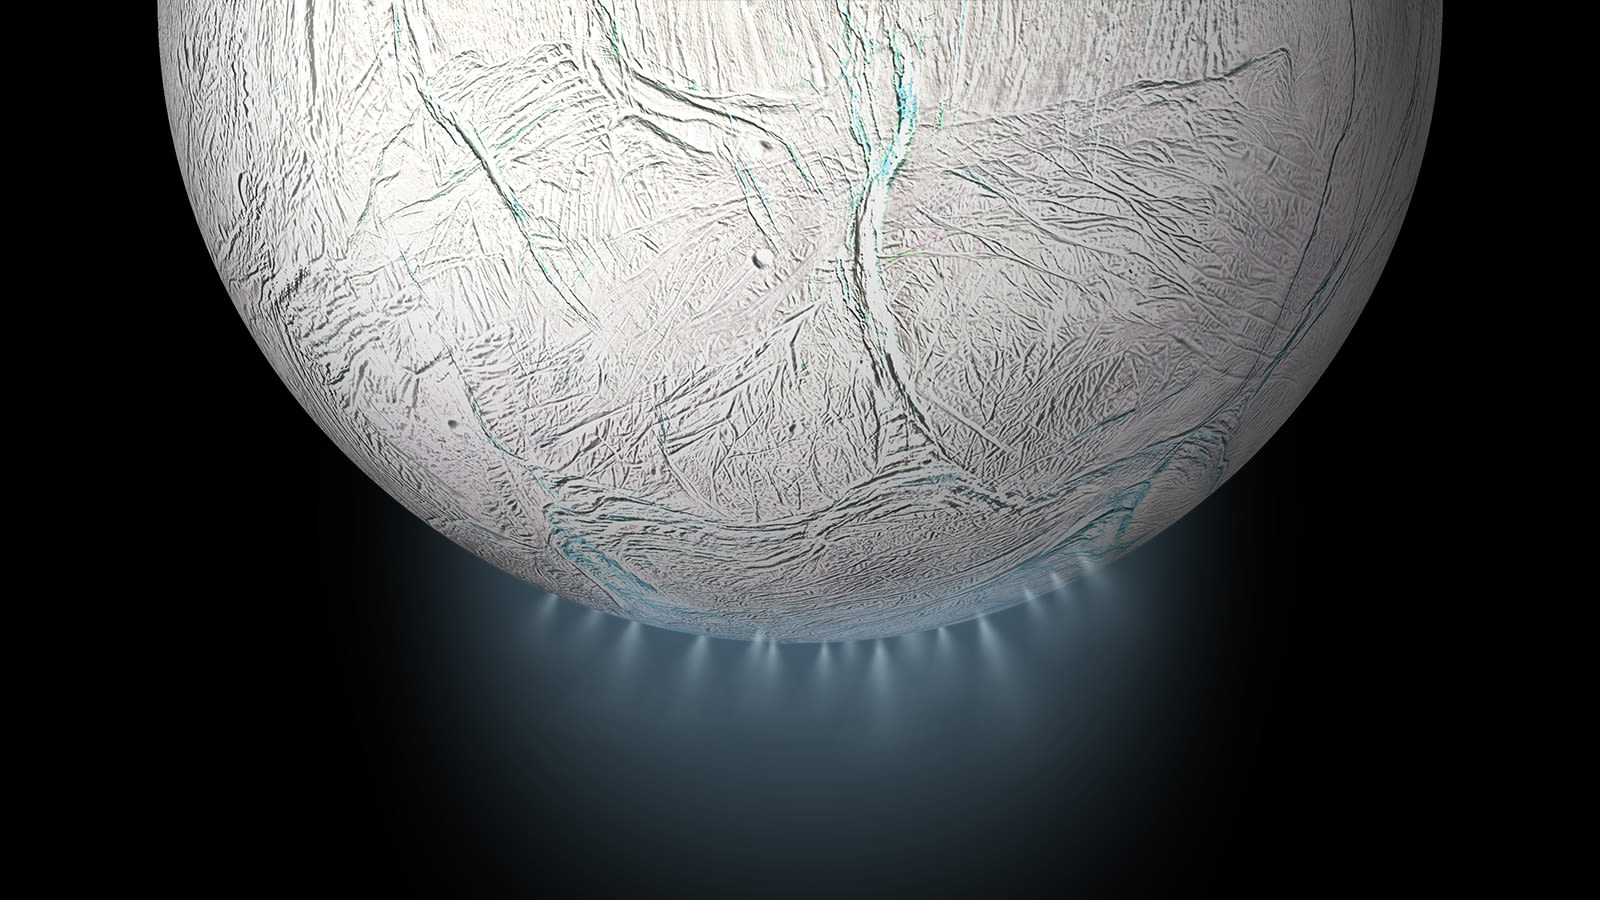 Illustration: NASA/JPL-Caltech